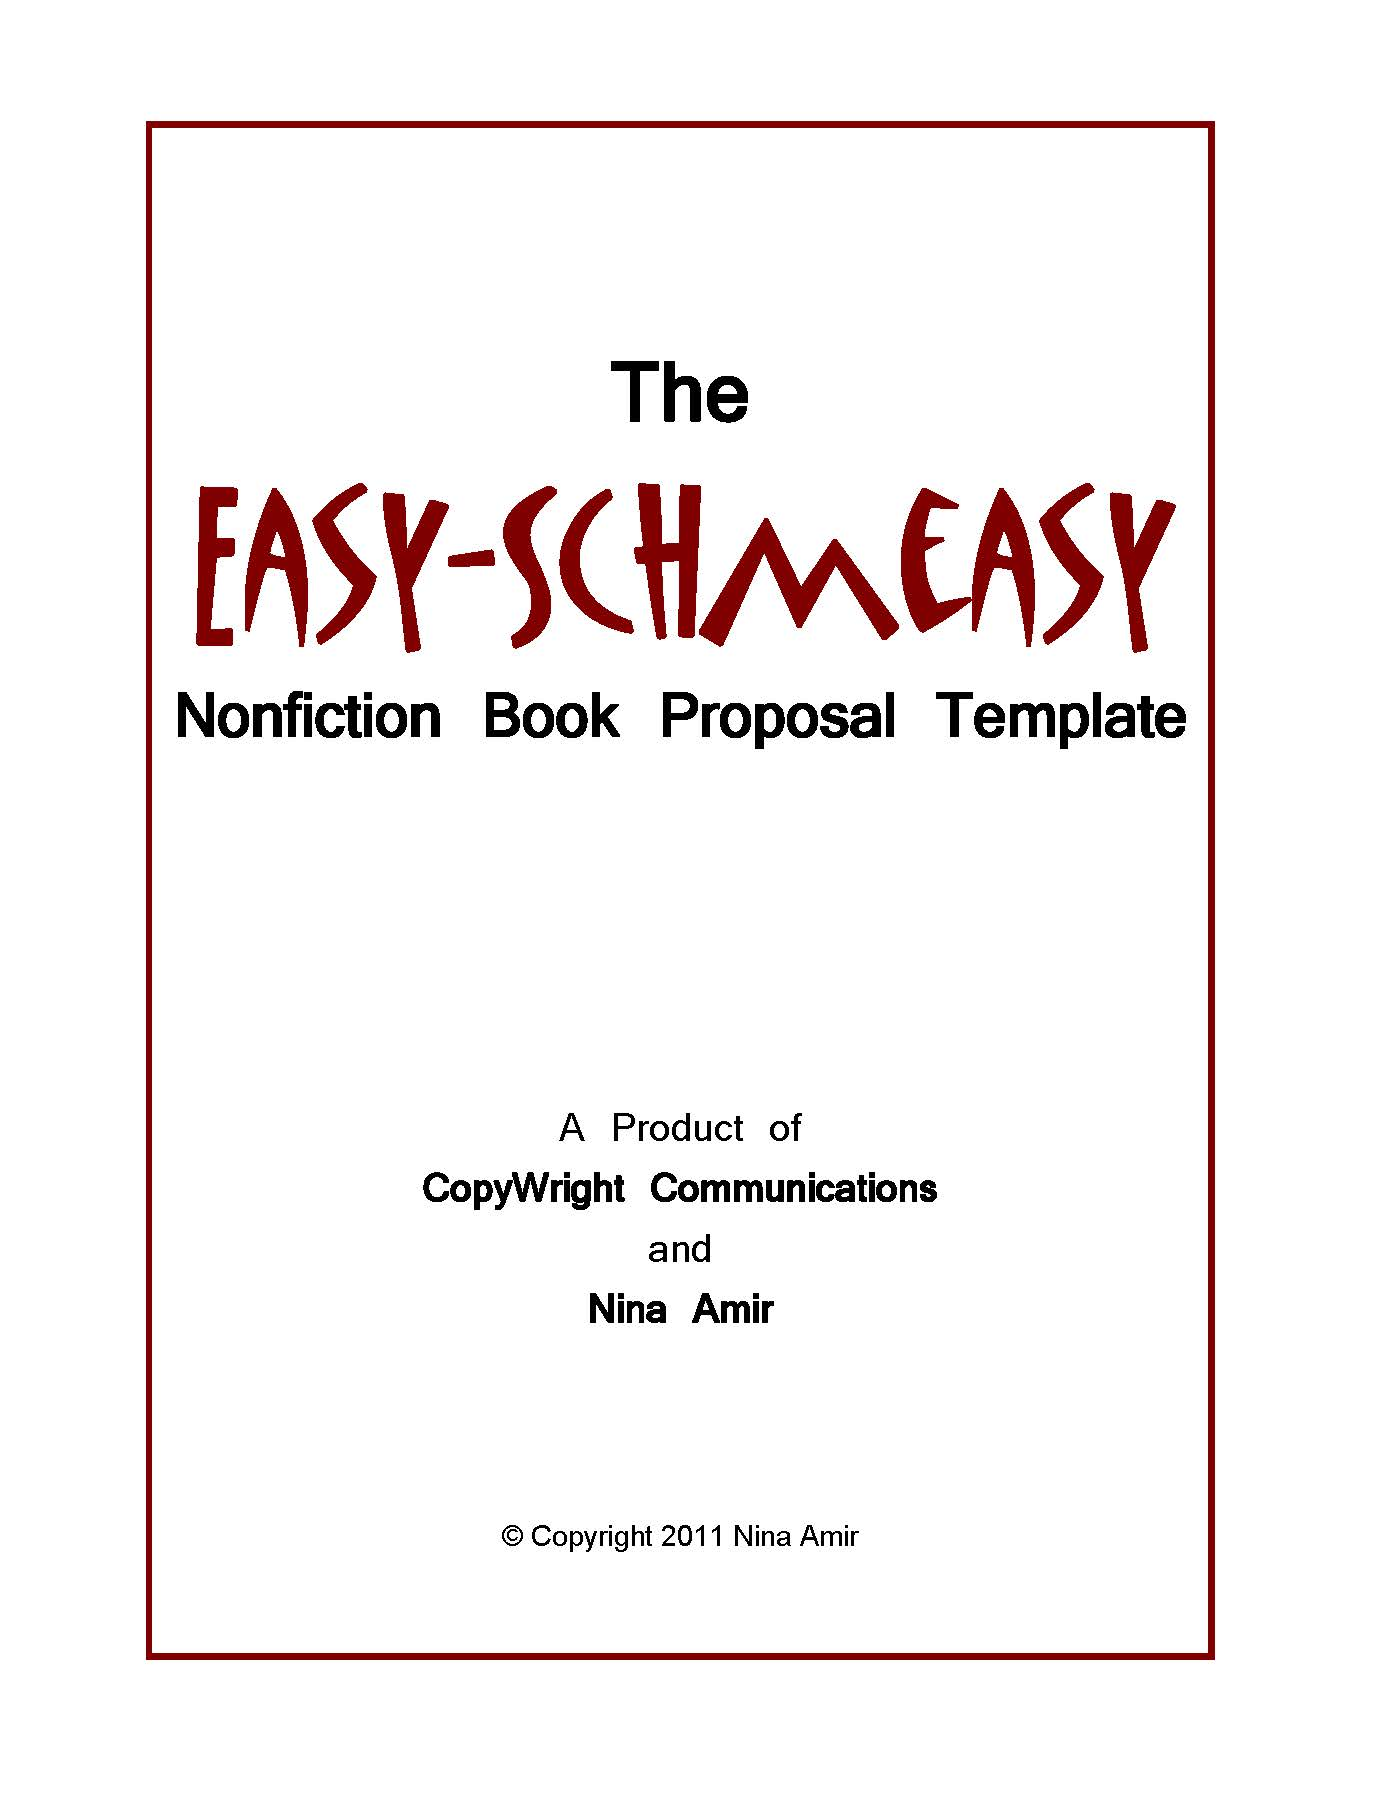 Easy Schmeasy Book Proposal Template   Write Nonfiction NOW!